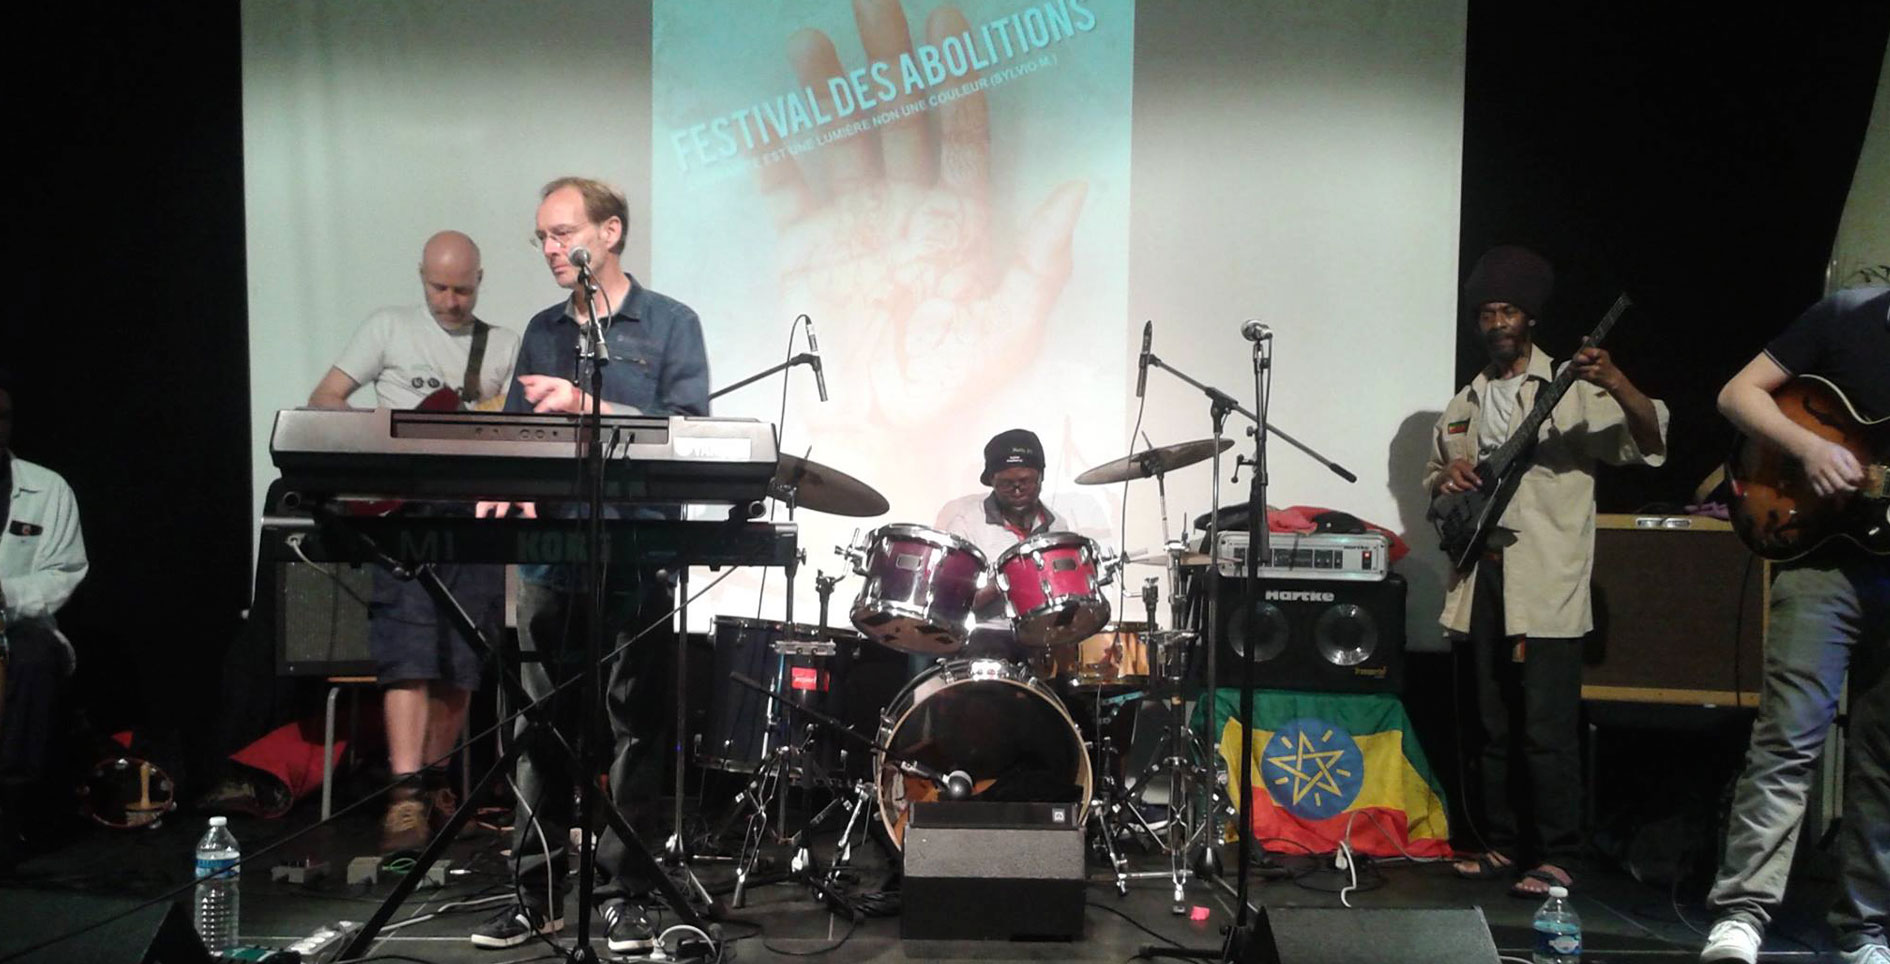 Festival Abolitions 2017